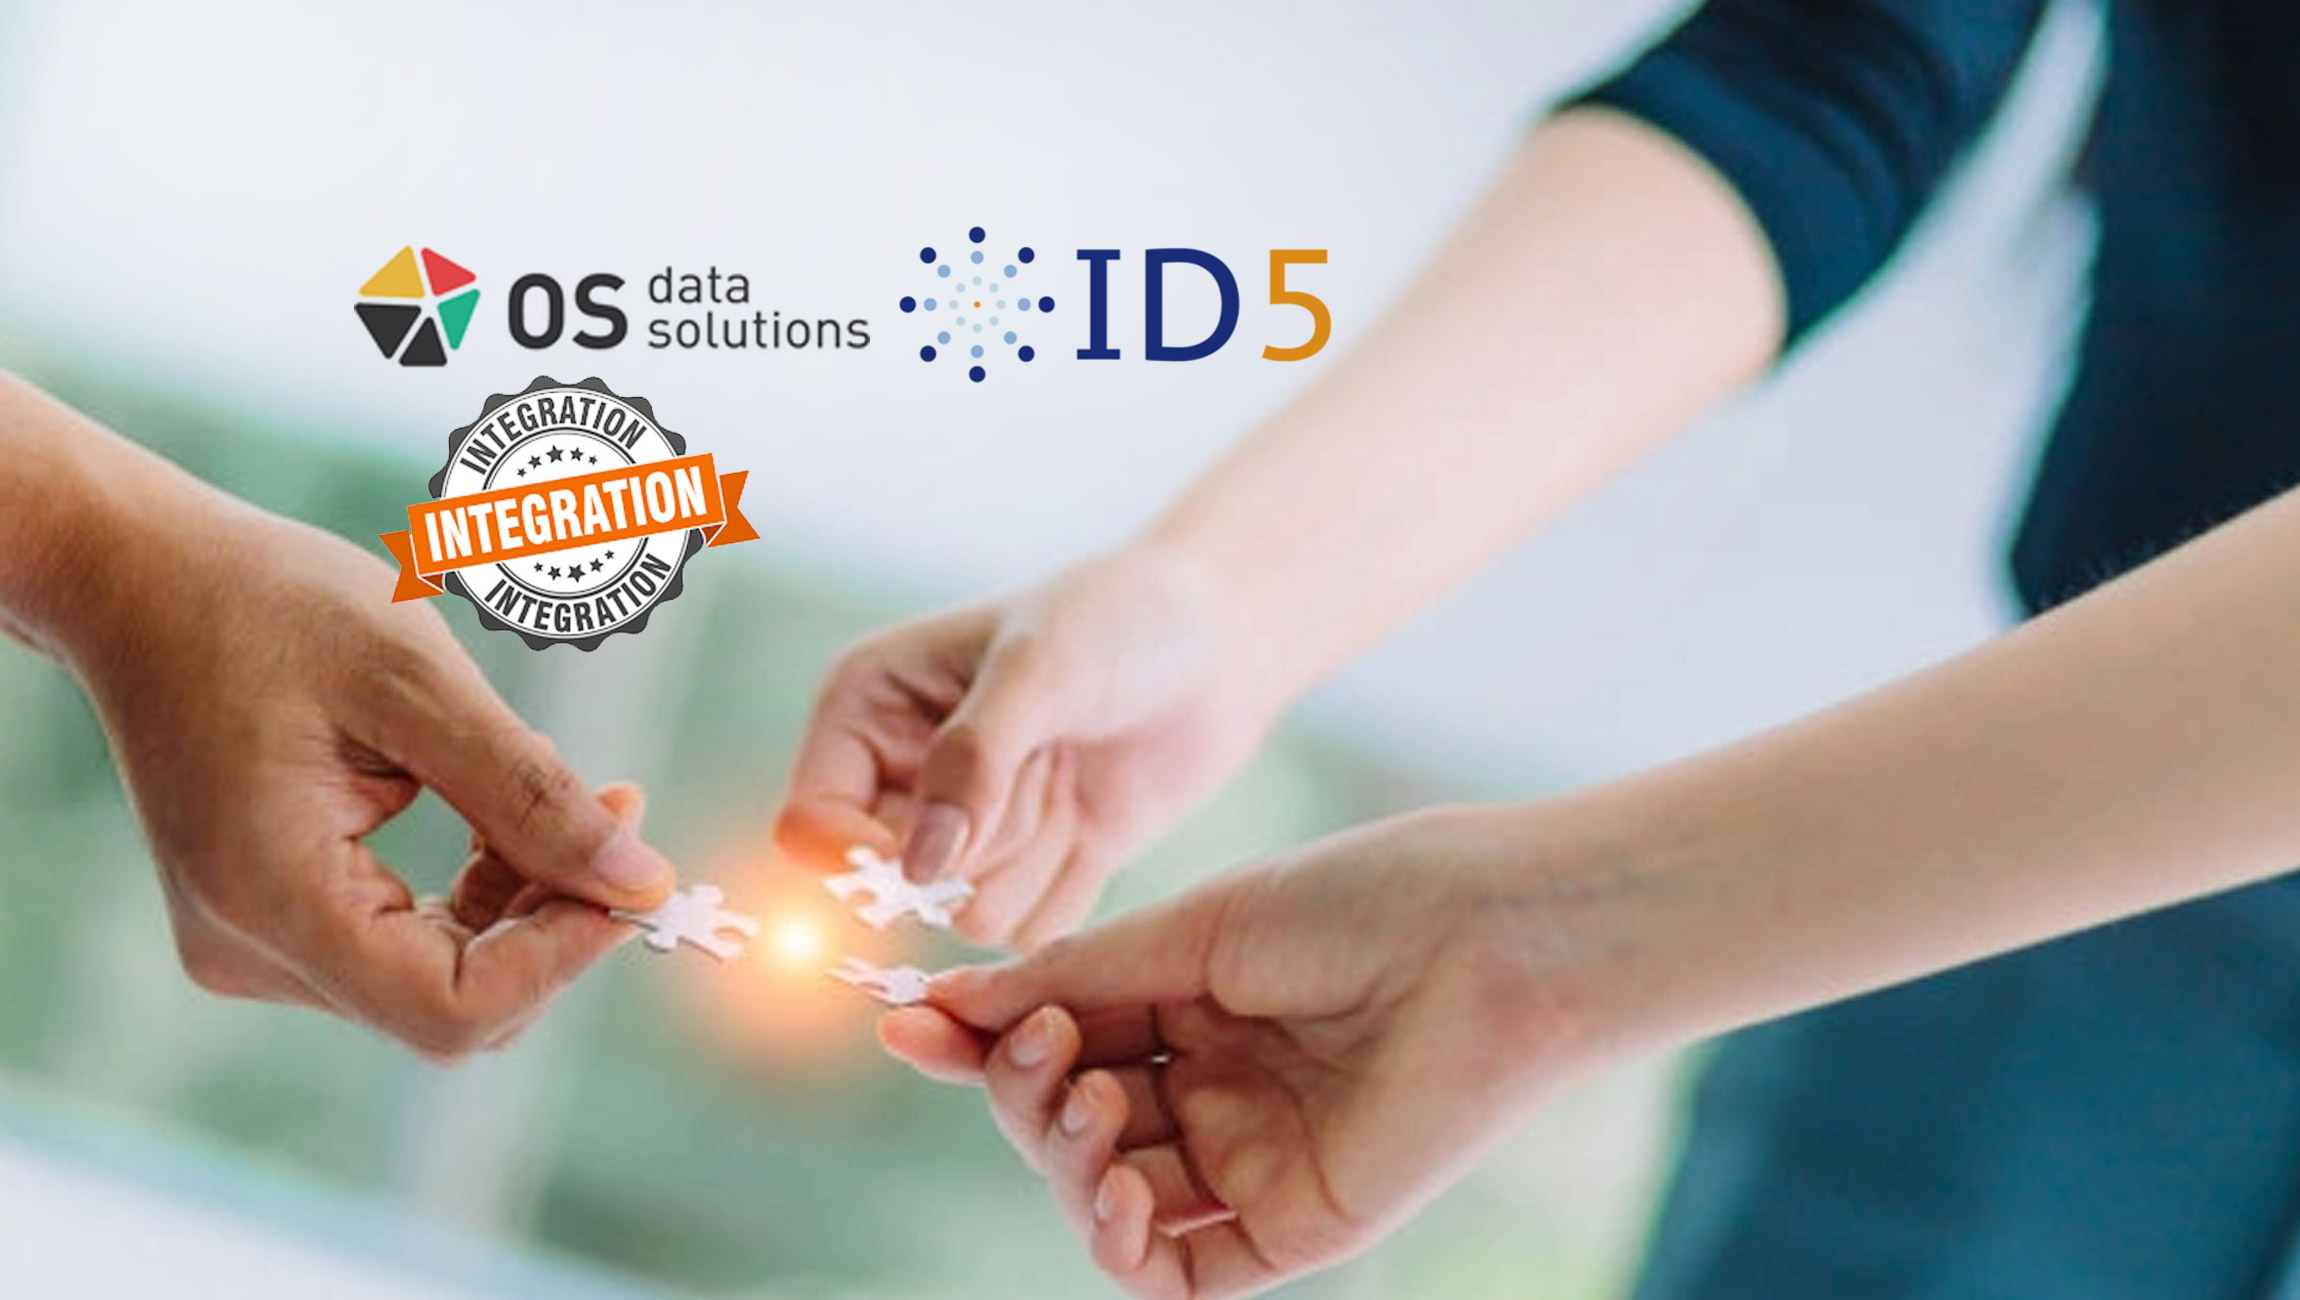 OS Data Solutions Integrates with ID5 to Address More Users and Increases Reach by 28% Across All Browsers